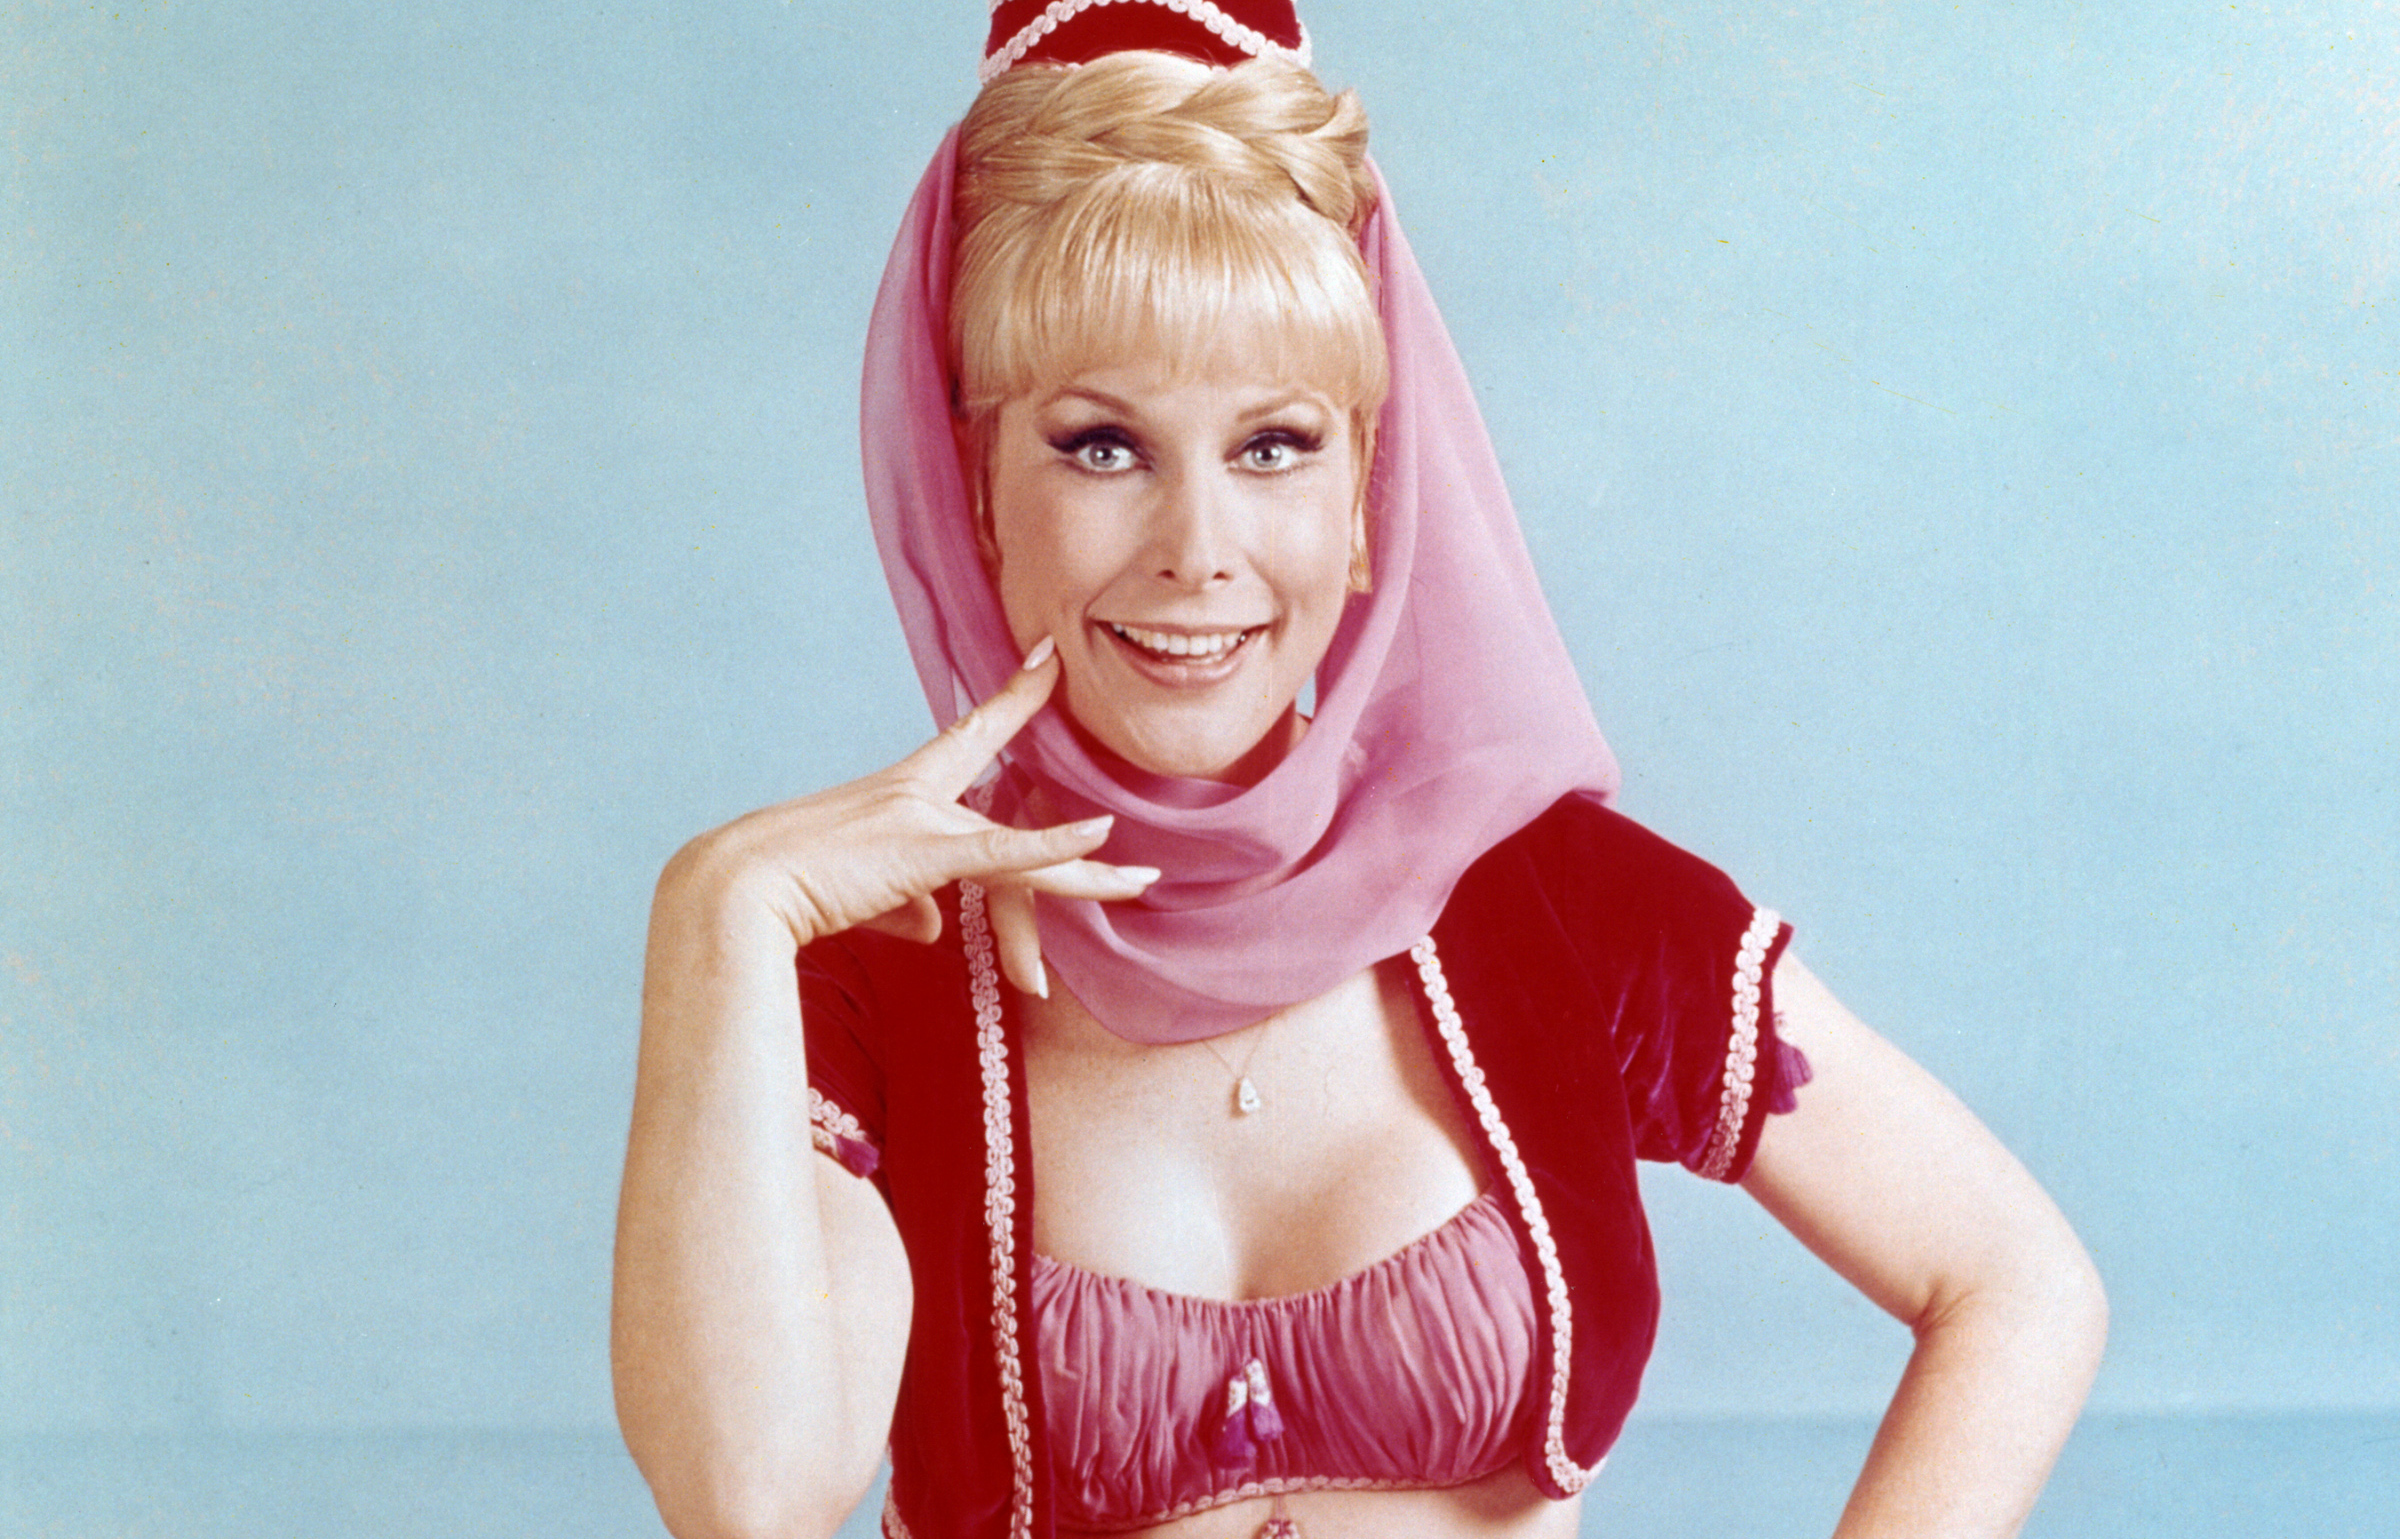 A Dream Of Christmas Cast.I Dream Of Jeannie Secrets From Barbara Eden And Larry Hagman